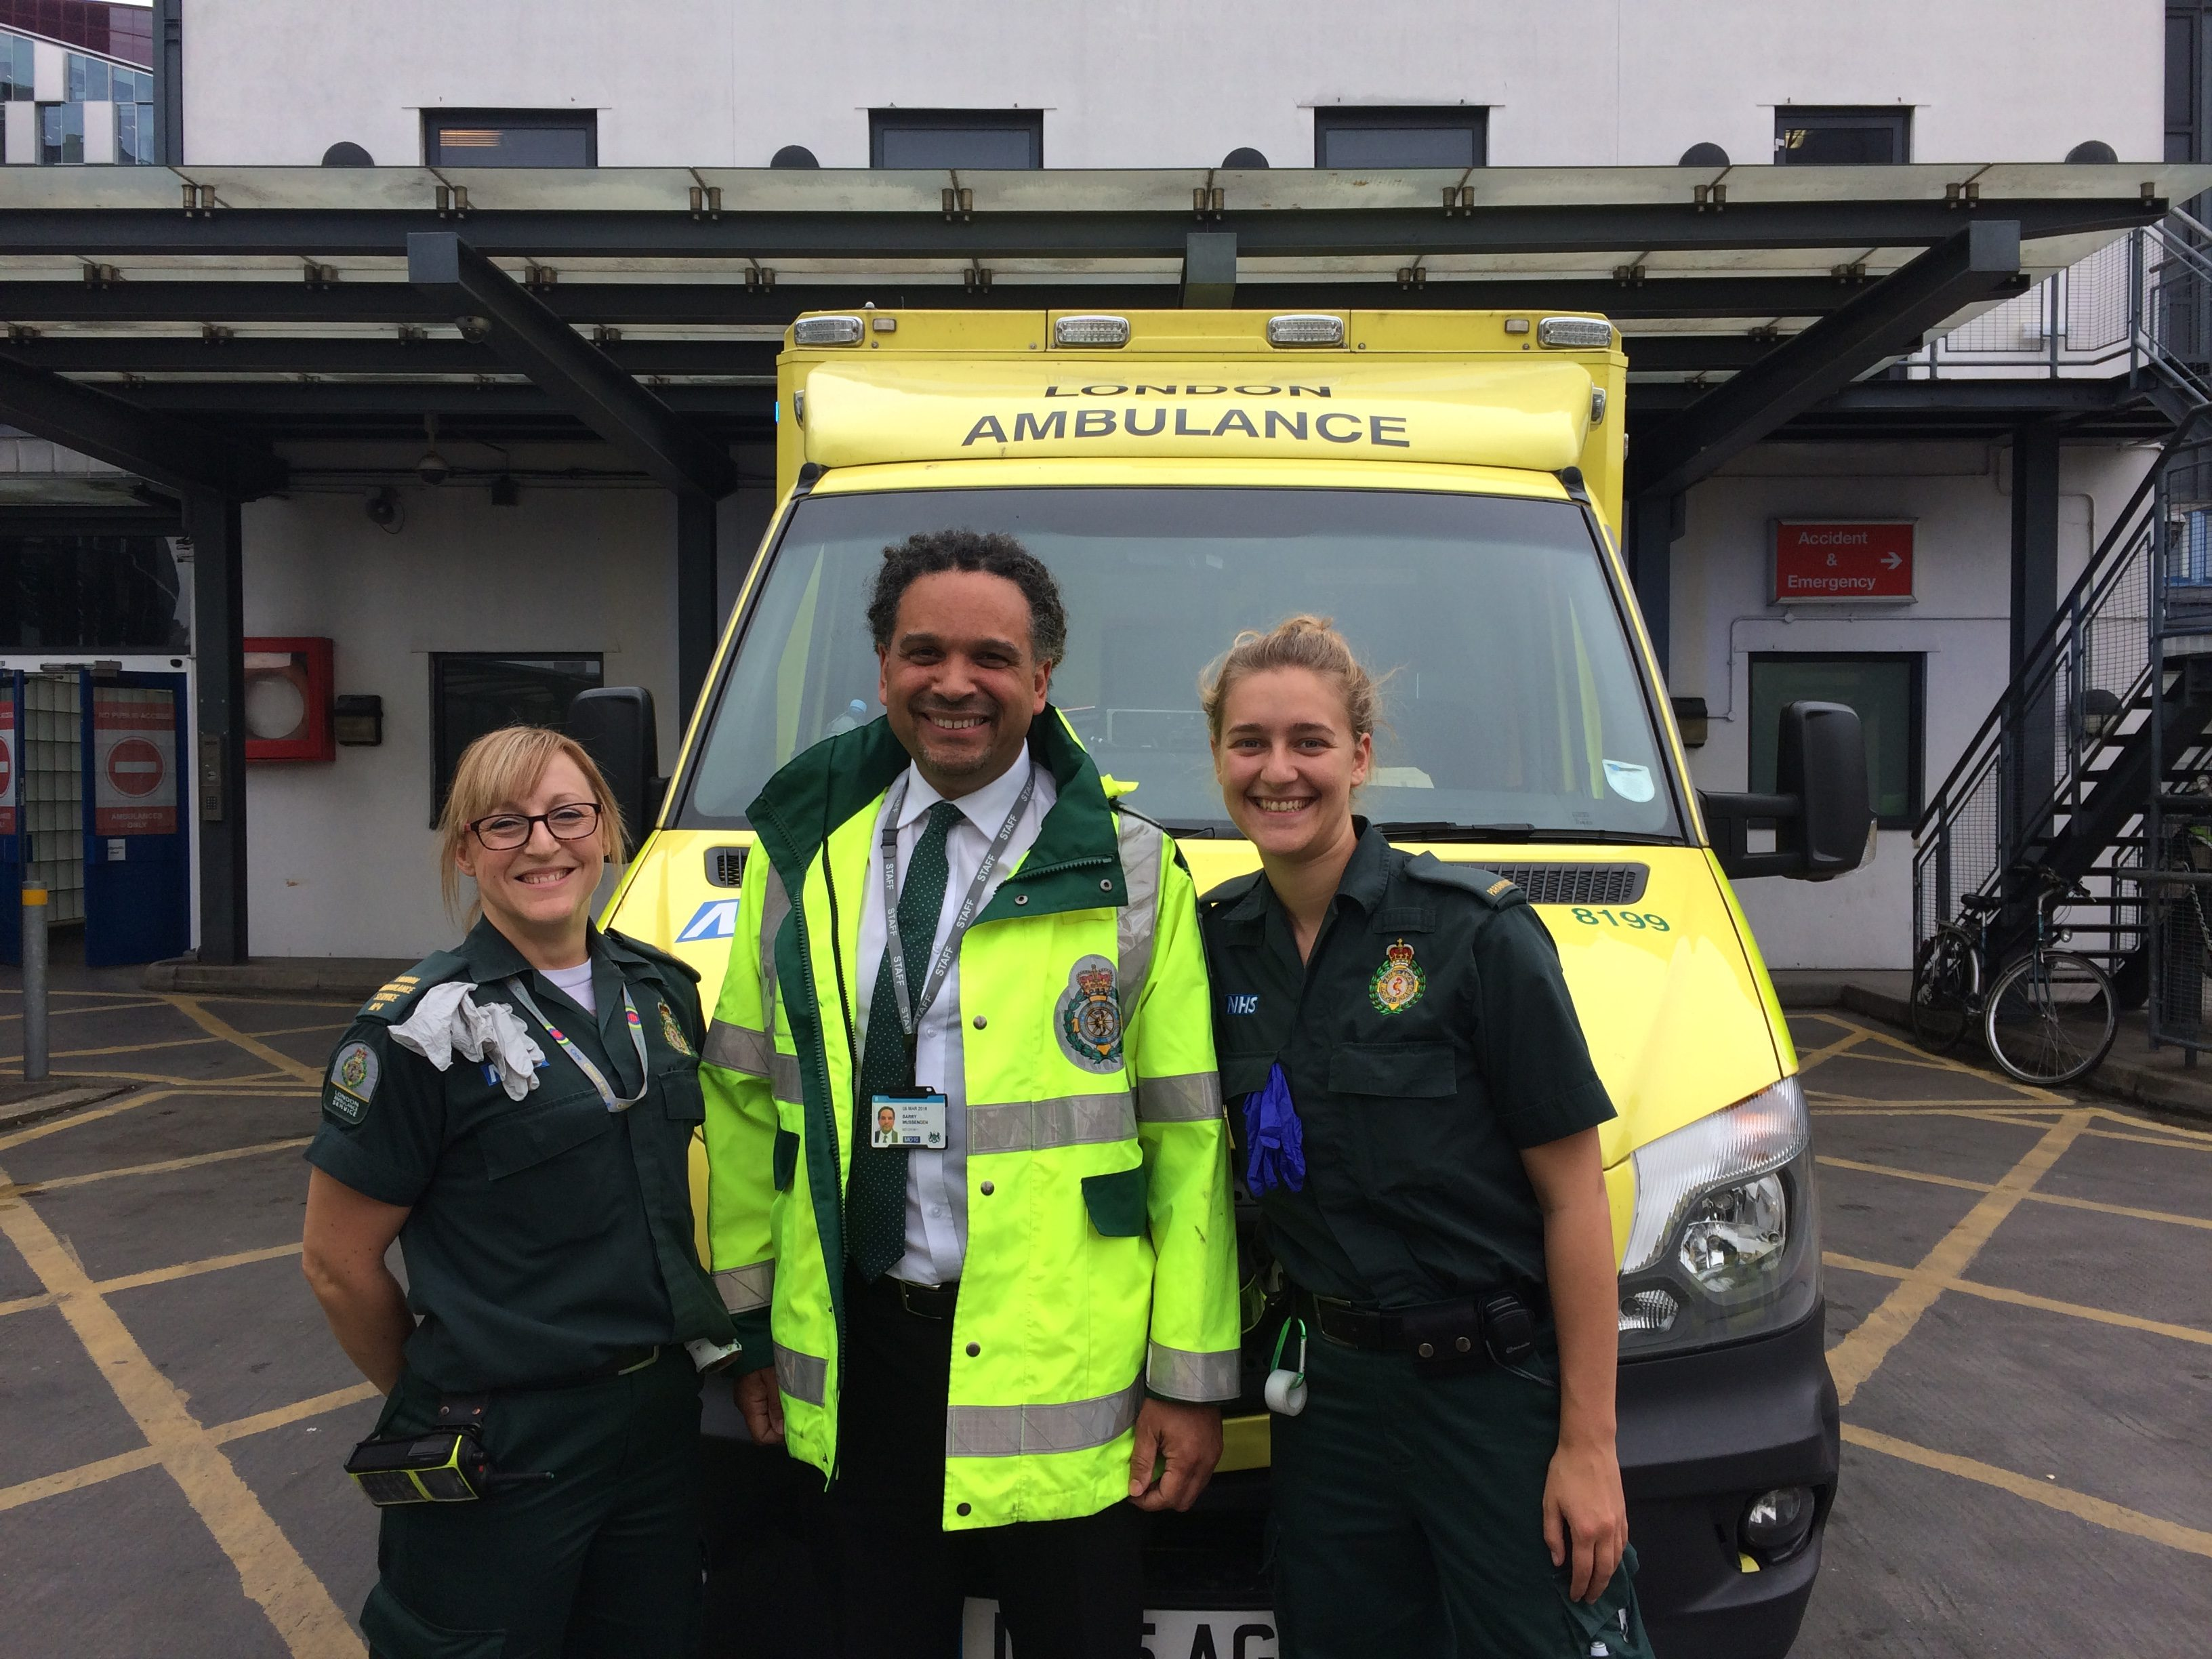 London Ambulance Services - A Day In The Life - Connecting to